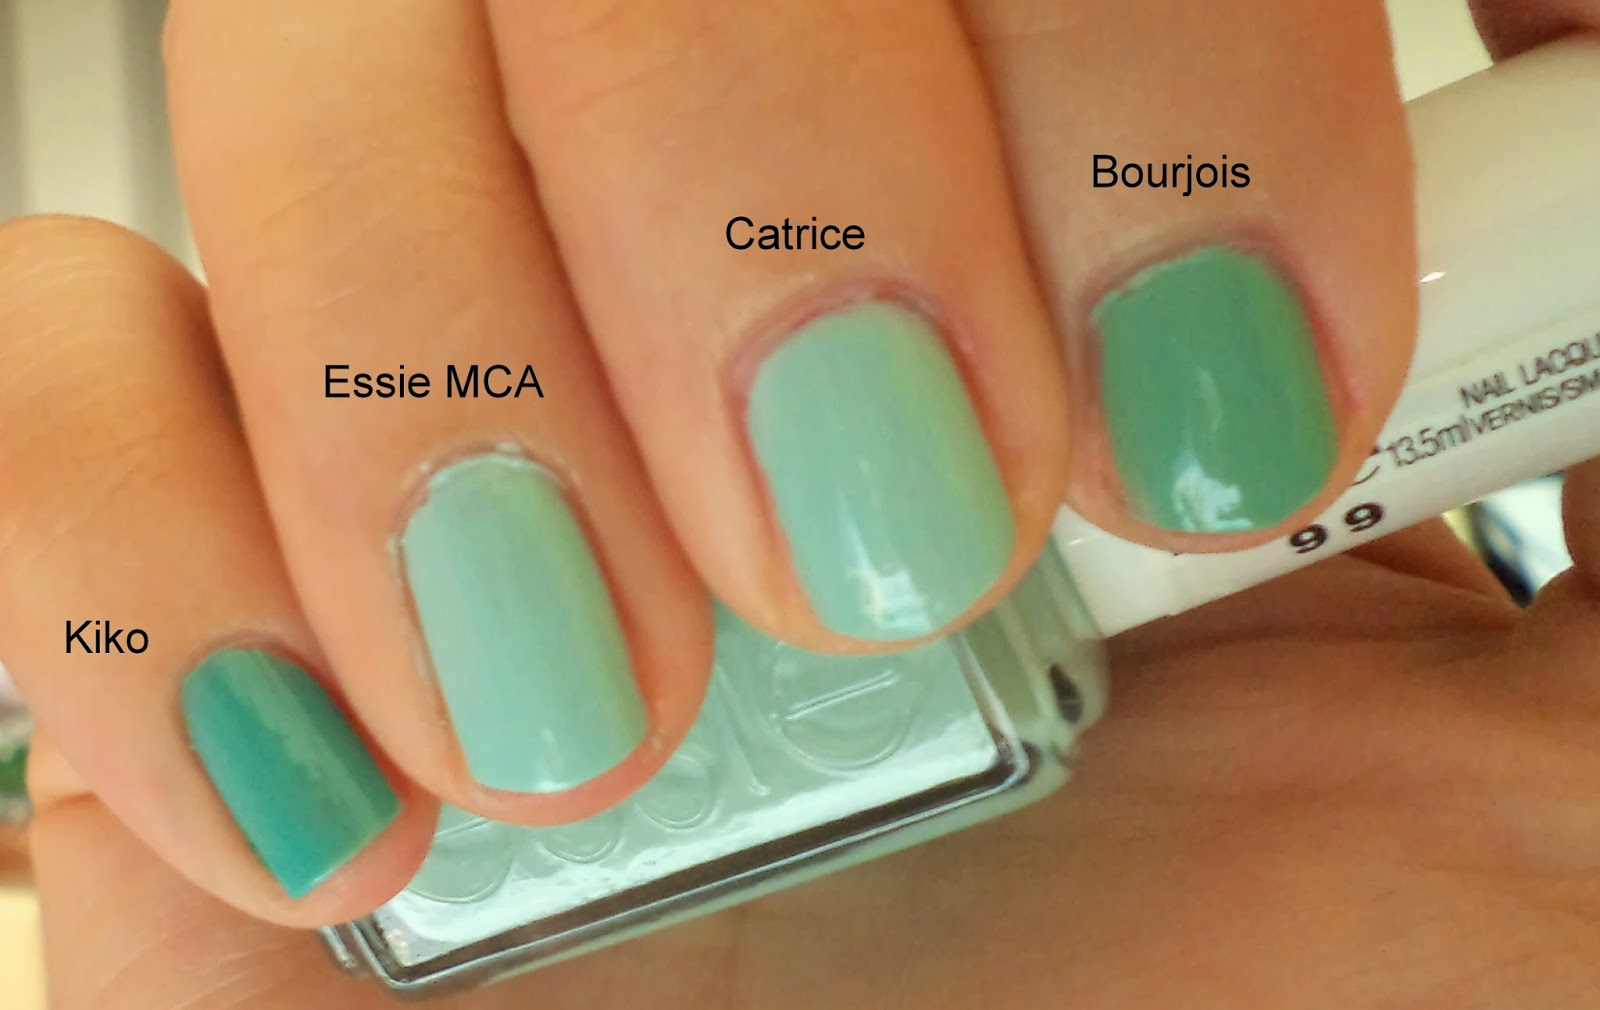 Battle Of The Mint/Blue-Green Polishes | Truth About Cosmetics